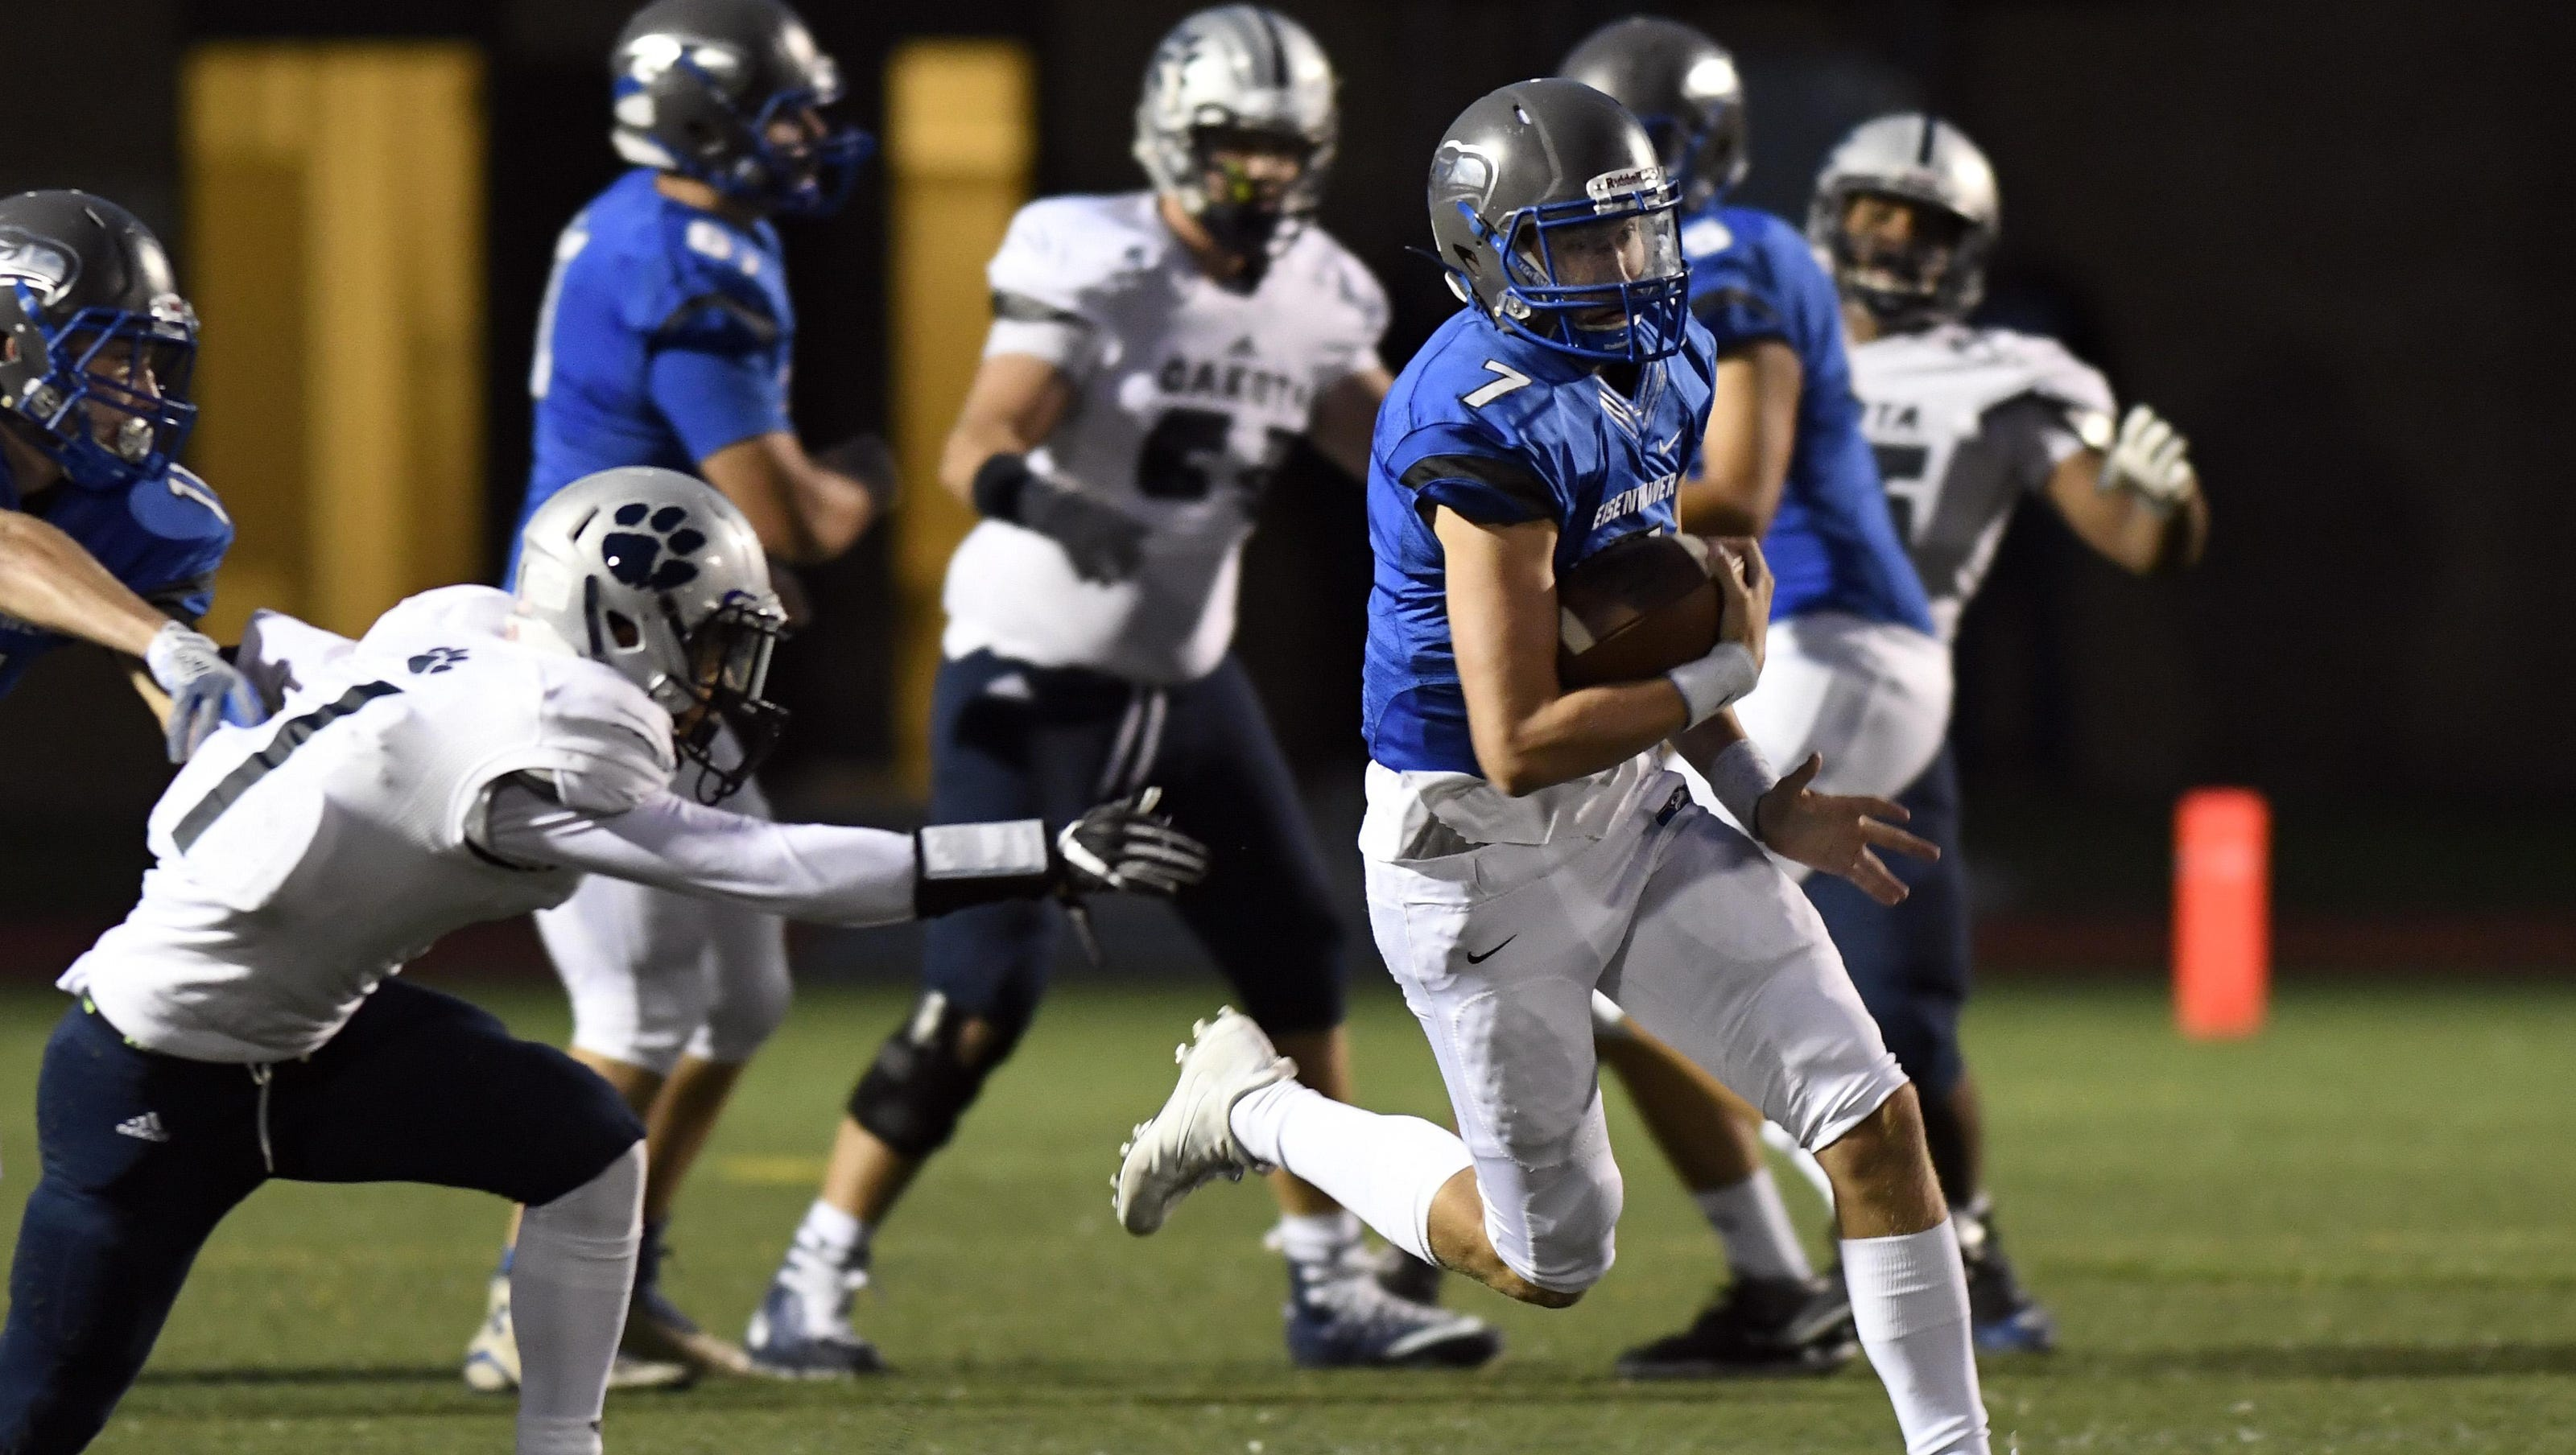 Michigan High School Football Playoff Outlook In All Eight Divisions